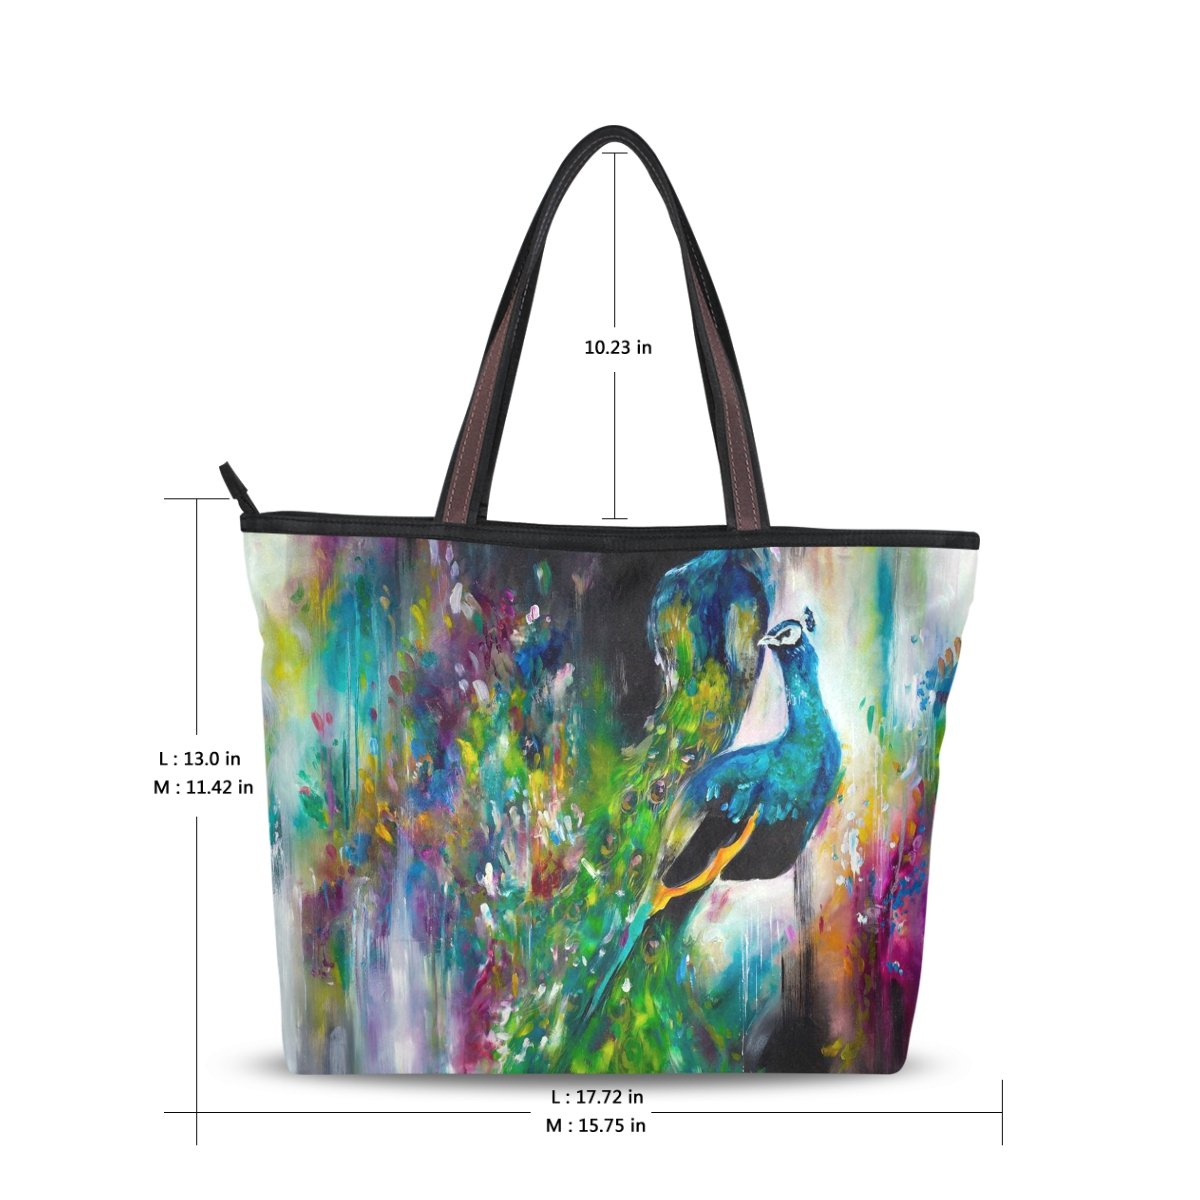 Women Large Tote Top Handle Shoulder Bags Peacock Feather Ladies Handbag L by JSTEL (Image #1)